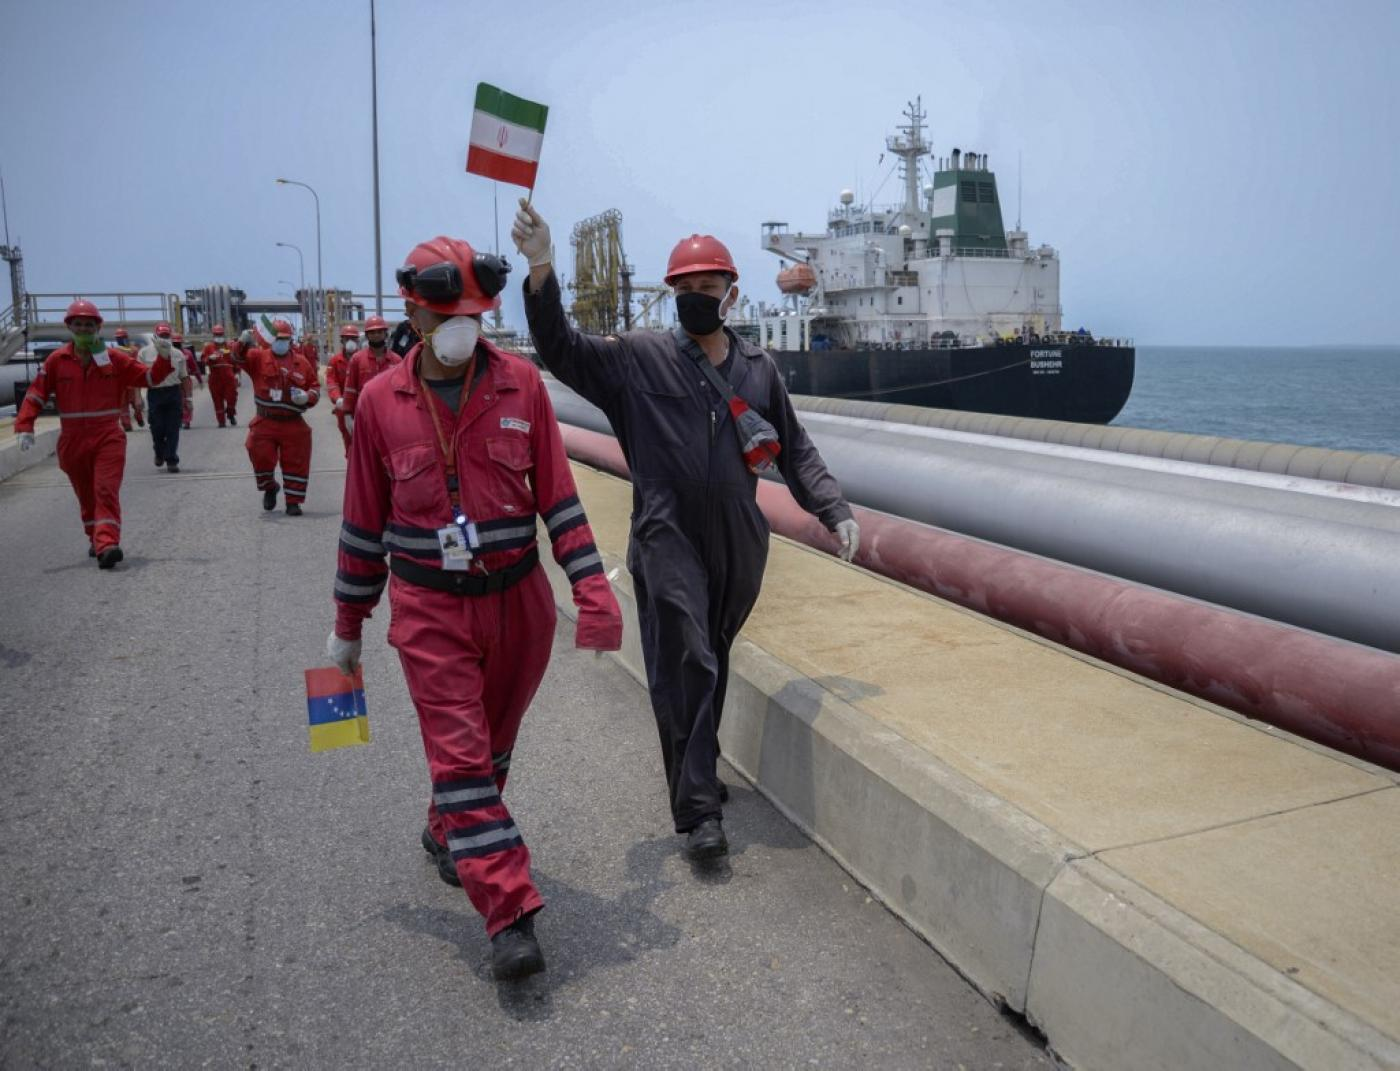 Iran Willing To Continue Fuel Shipments To Venezuela If Asked